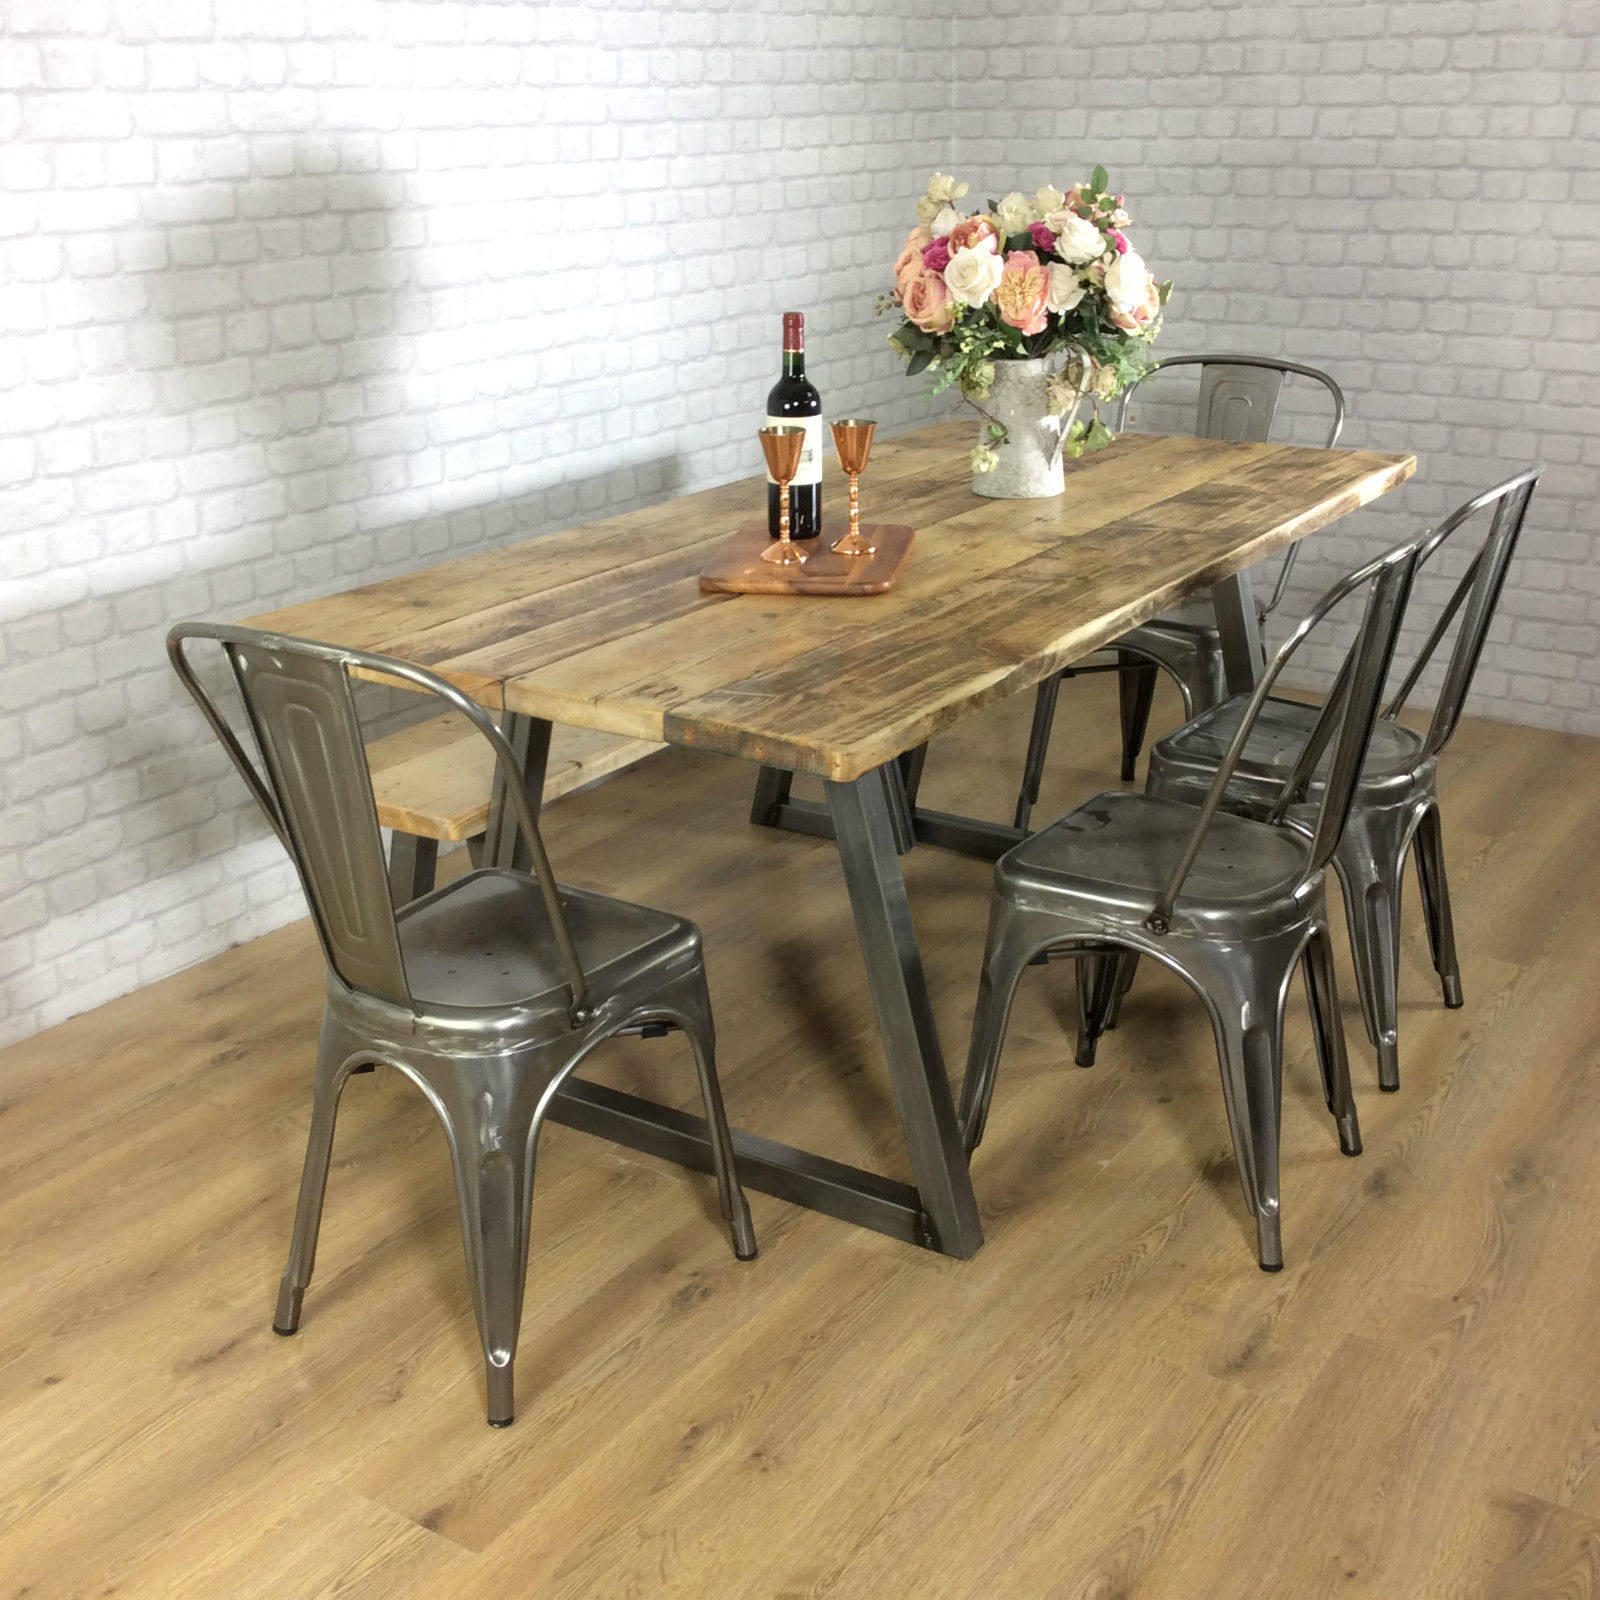 Picture of: Rustic Dining Table Industrial 6 8 Seater Solid Reclaimed Wood Metal B Shabby Bear Cottage